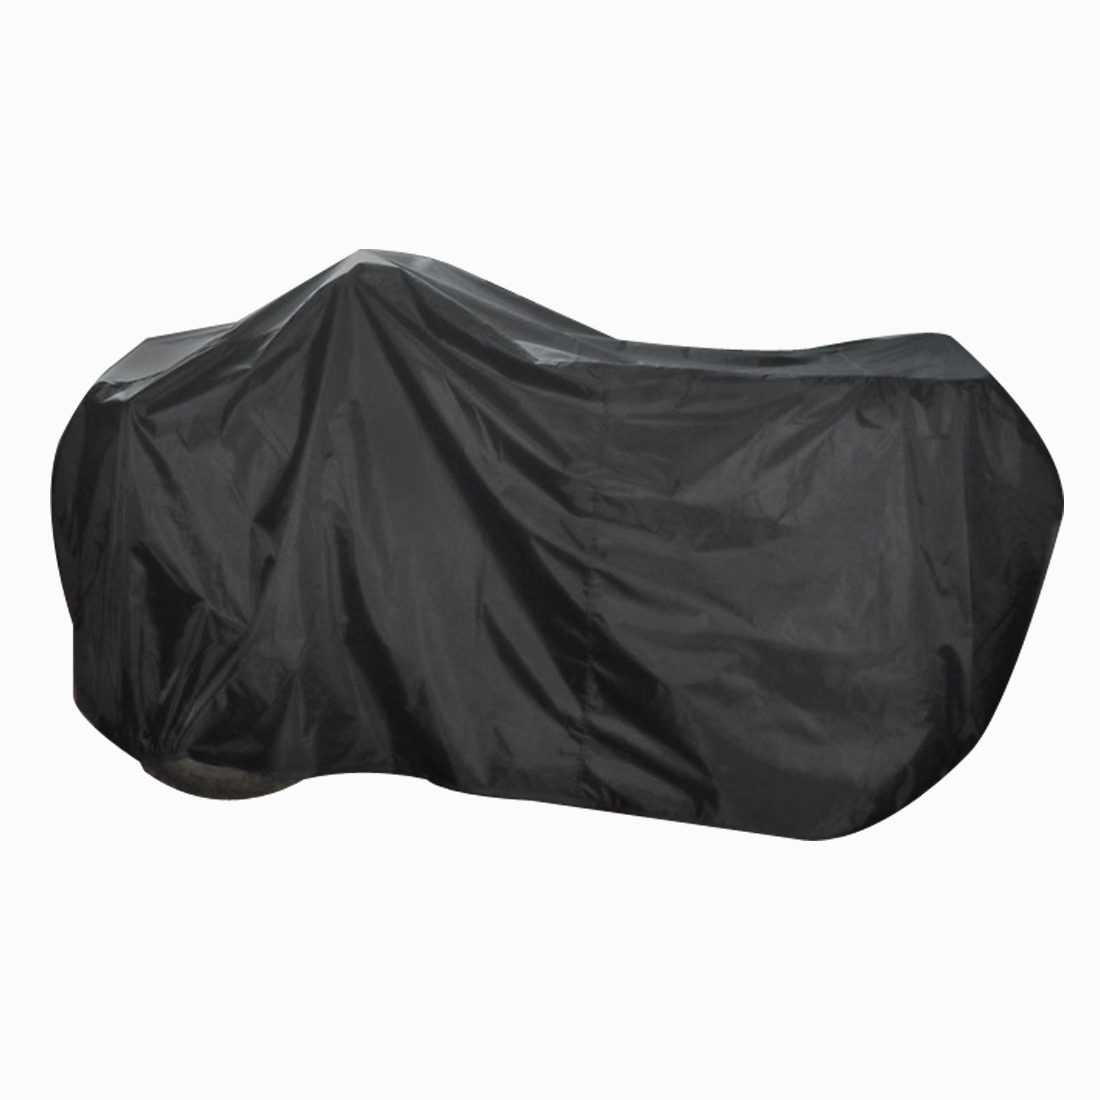 Black Waterproof UV Resistant Quad Bike ATV Cover for Honda Yamaha Suzuki